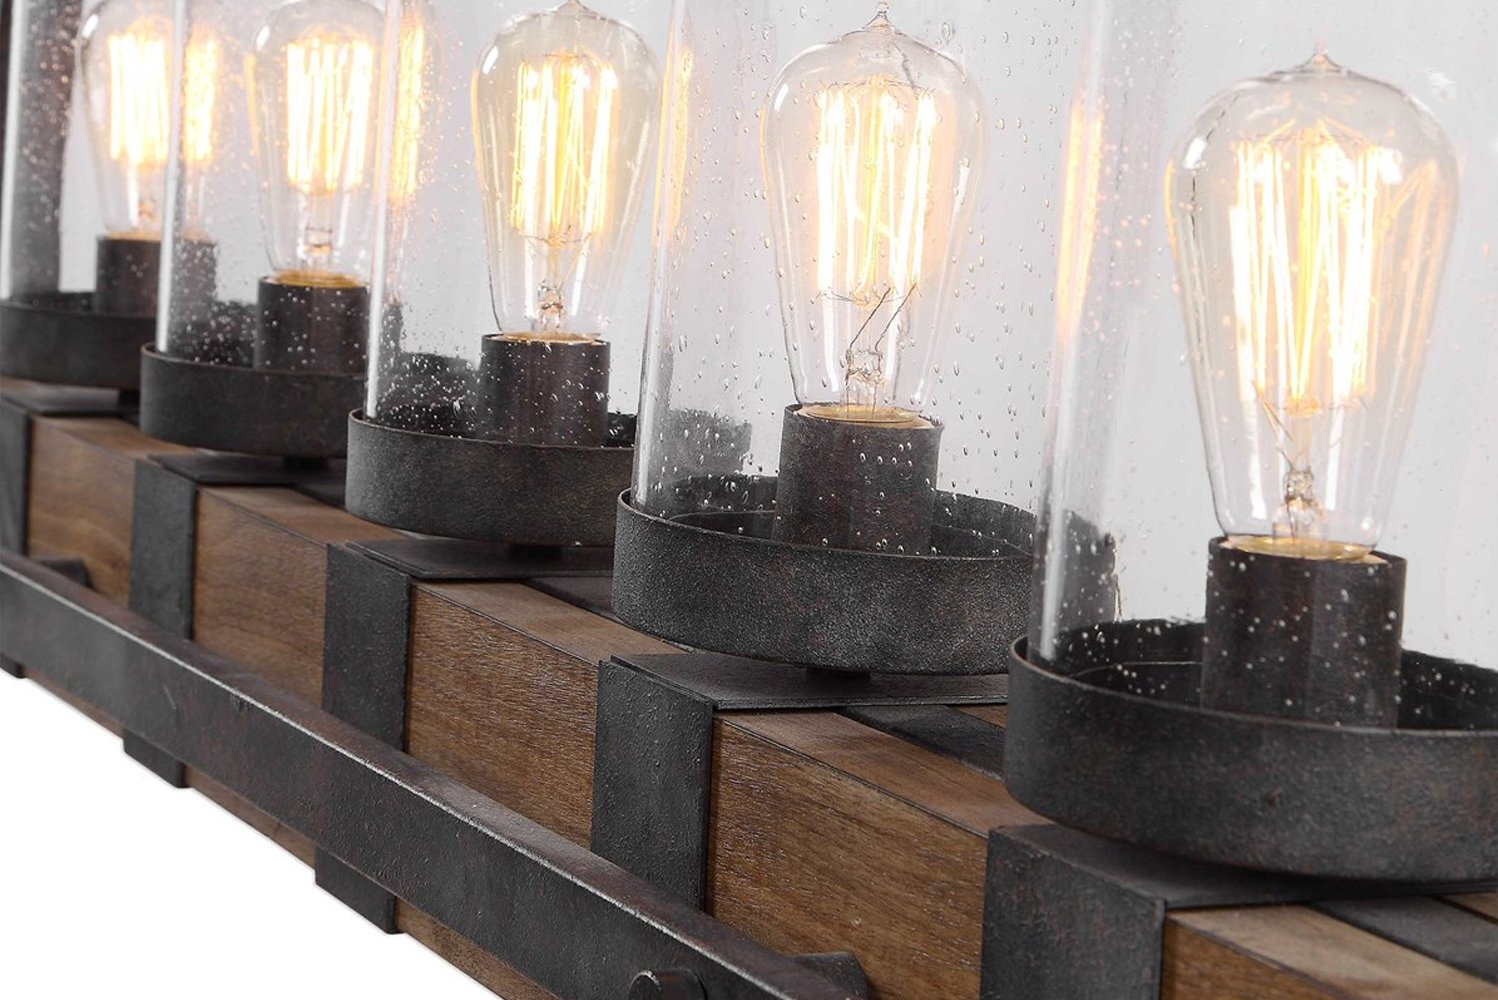 Each fixture contains five 100-watt Edison sockets and five 60-watt antique-style BT58 Amber light bulbs.